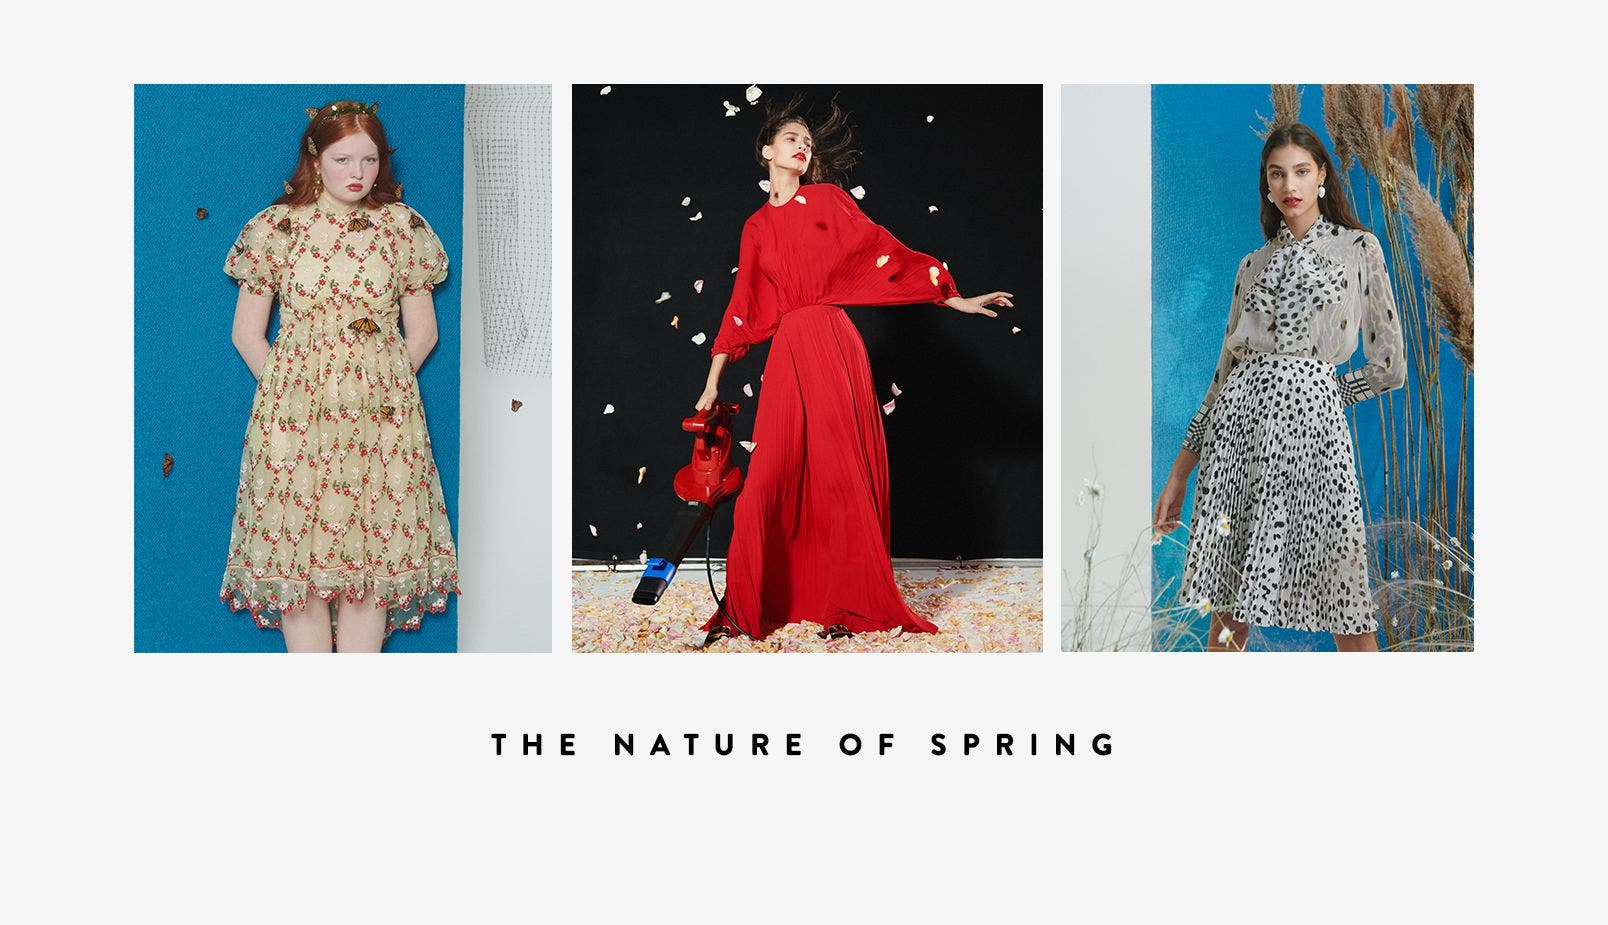 The nature of spring: spring 2019 women's campaign.